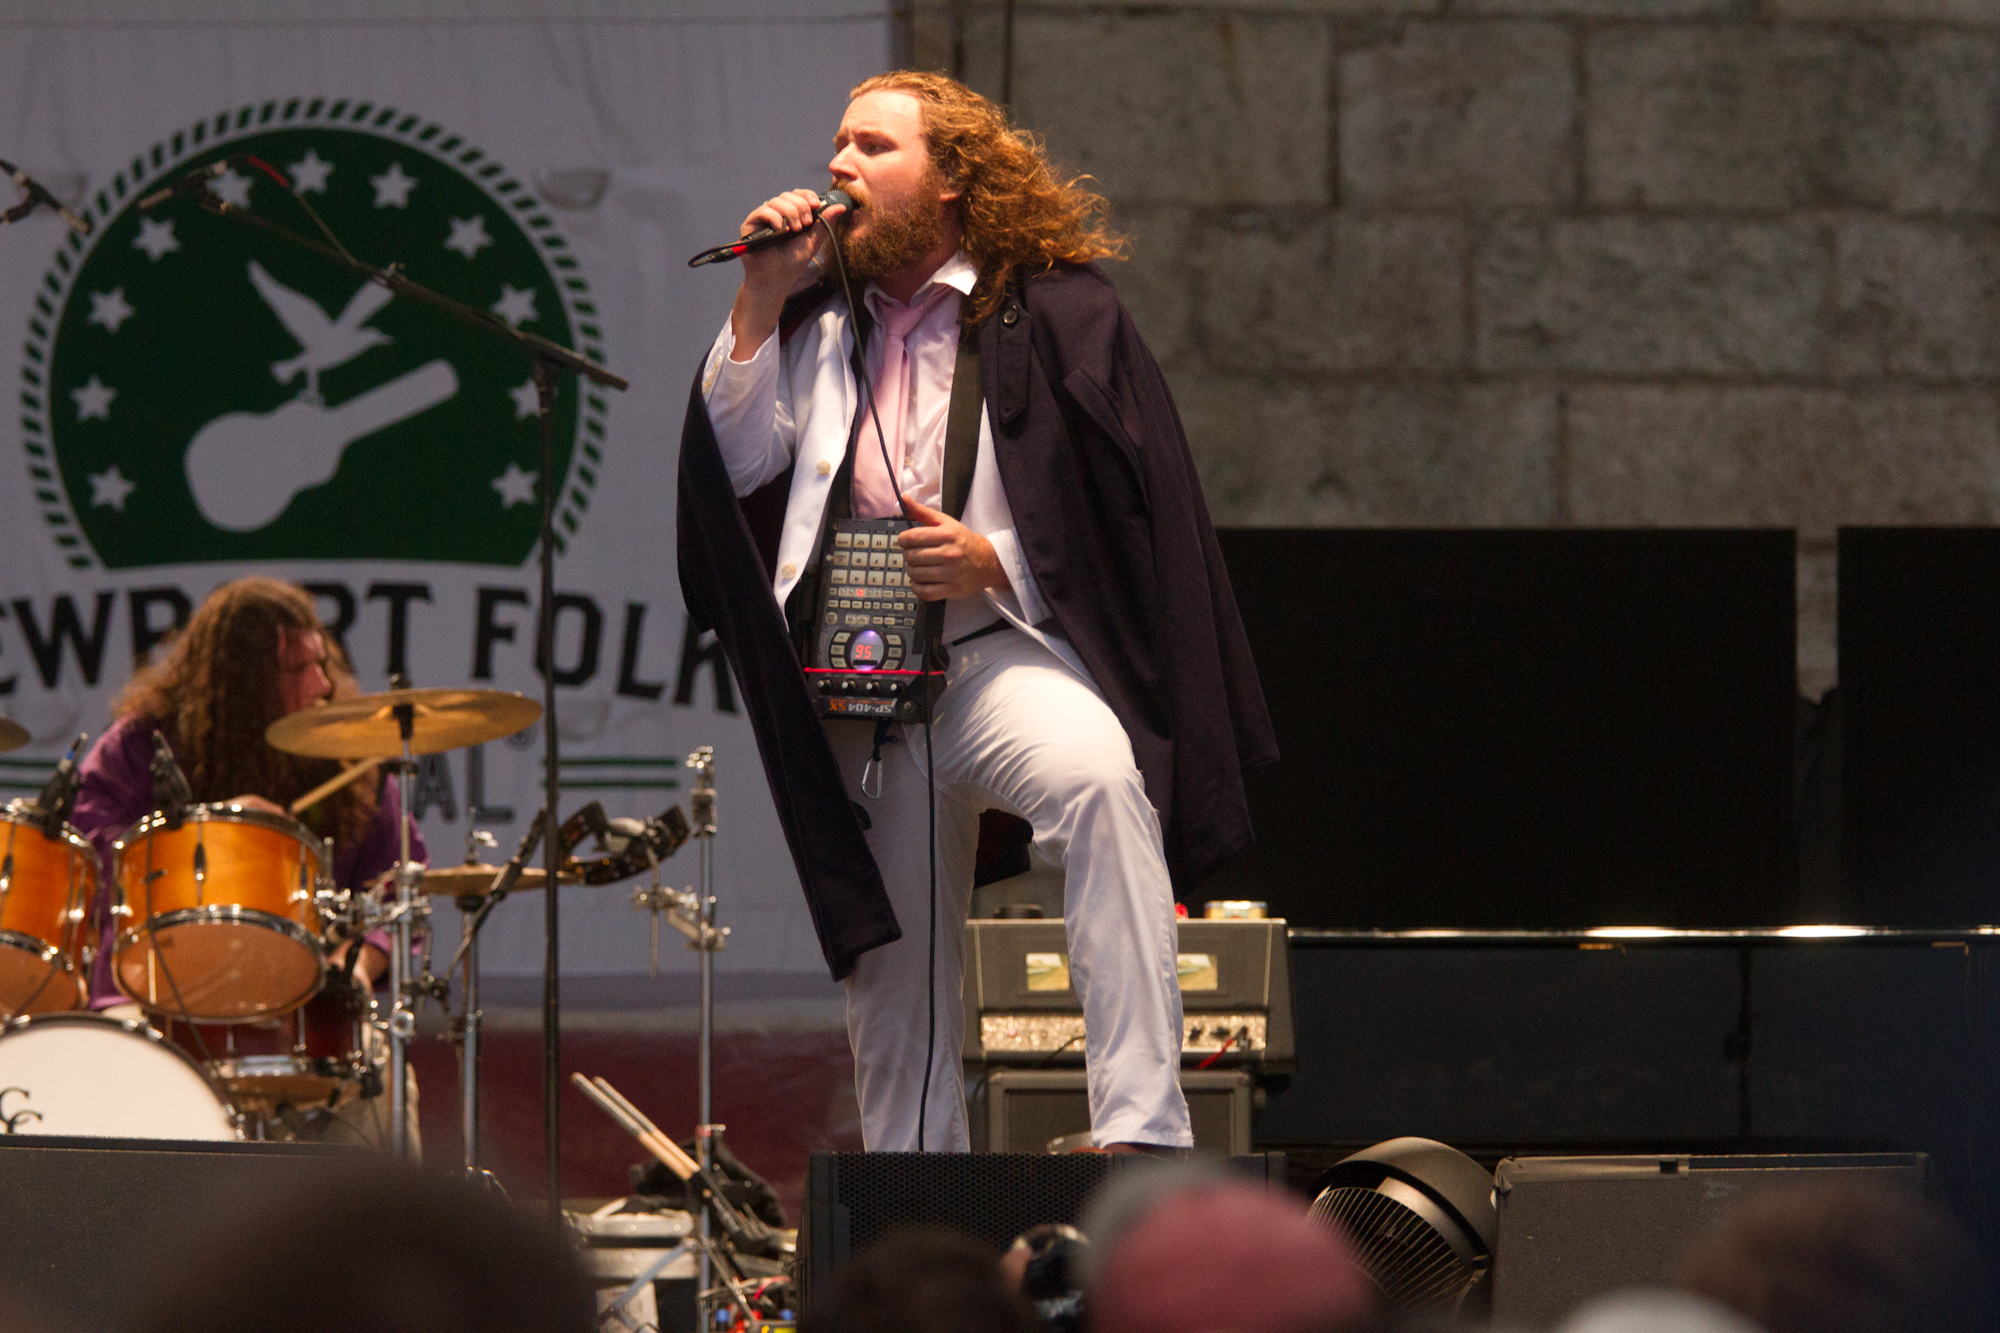 Jim James looked fabulous at Newport -- yes, that is both a cape and a Roland SP-404SX Portable sampler draped around his neck. The dude was everywhere, too, from an umbrella-toting guest spot with Conor Oberst to a concert with his New Multitudes project.